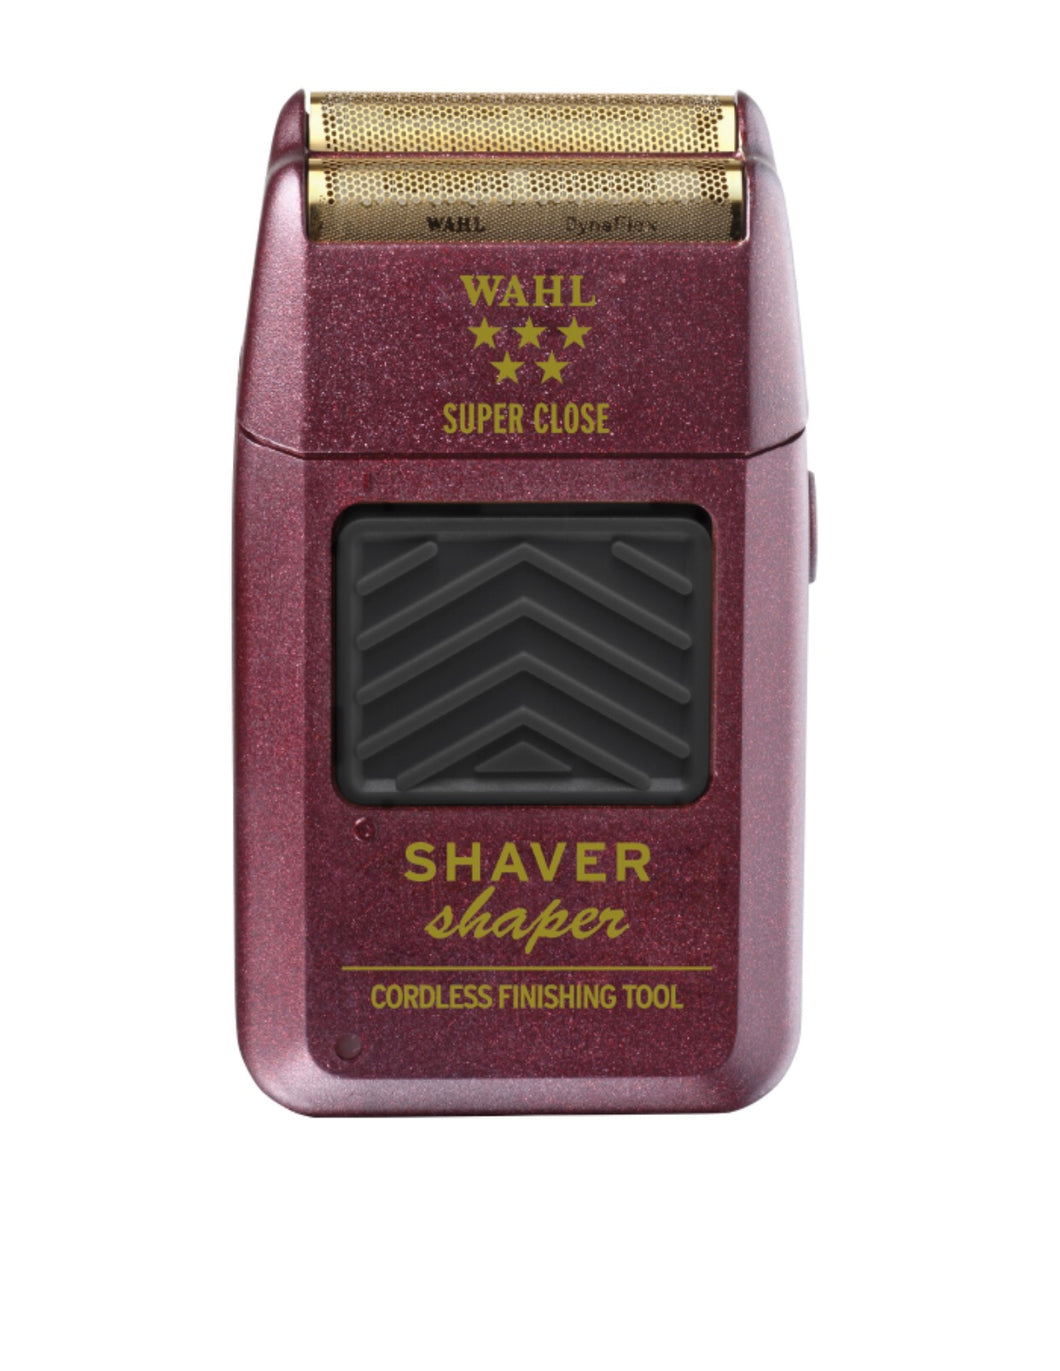 Wahl Professional 5 Star Series Rechargeable Shaver